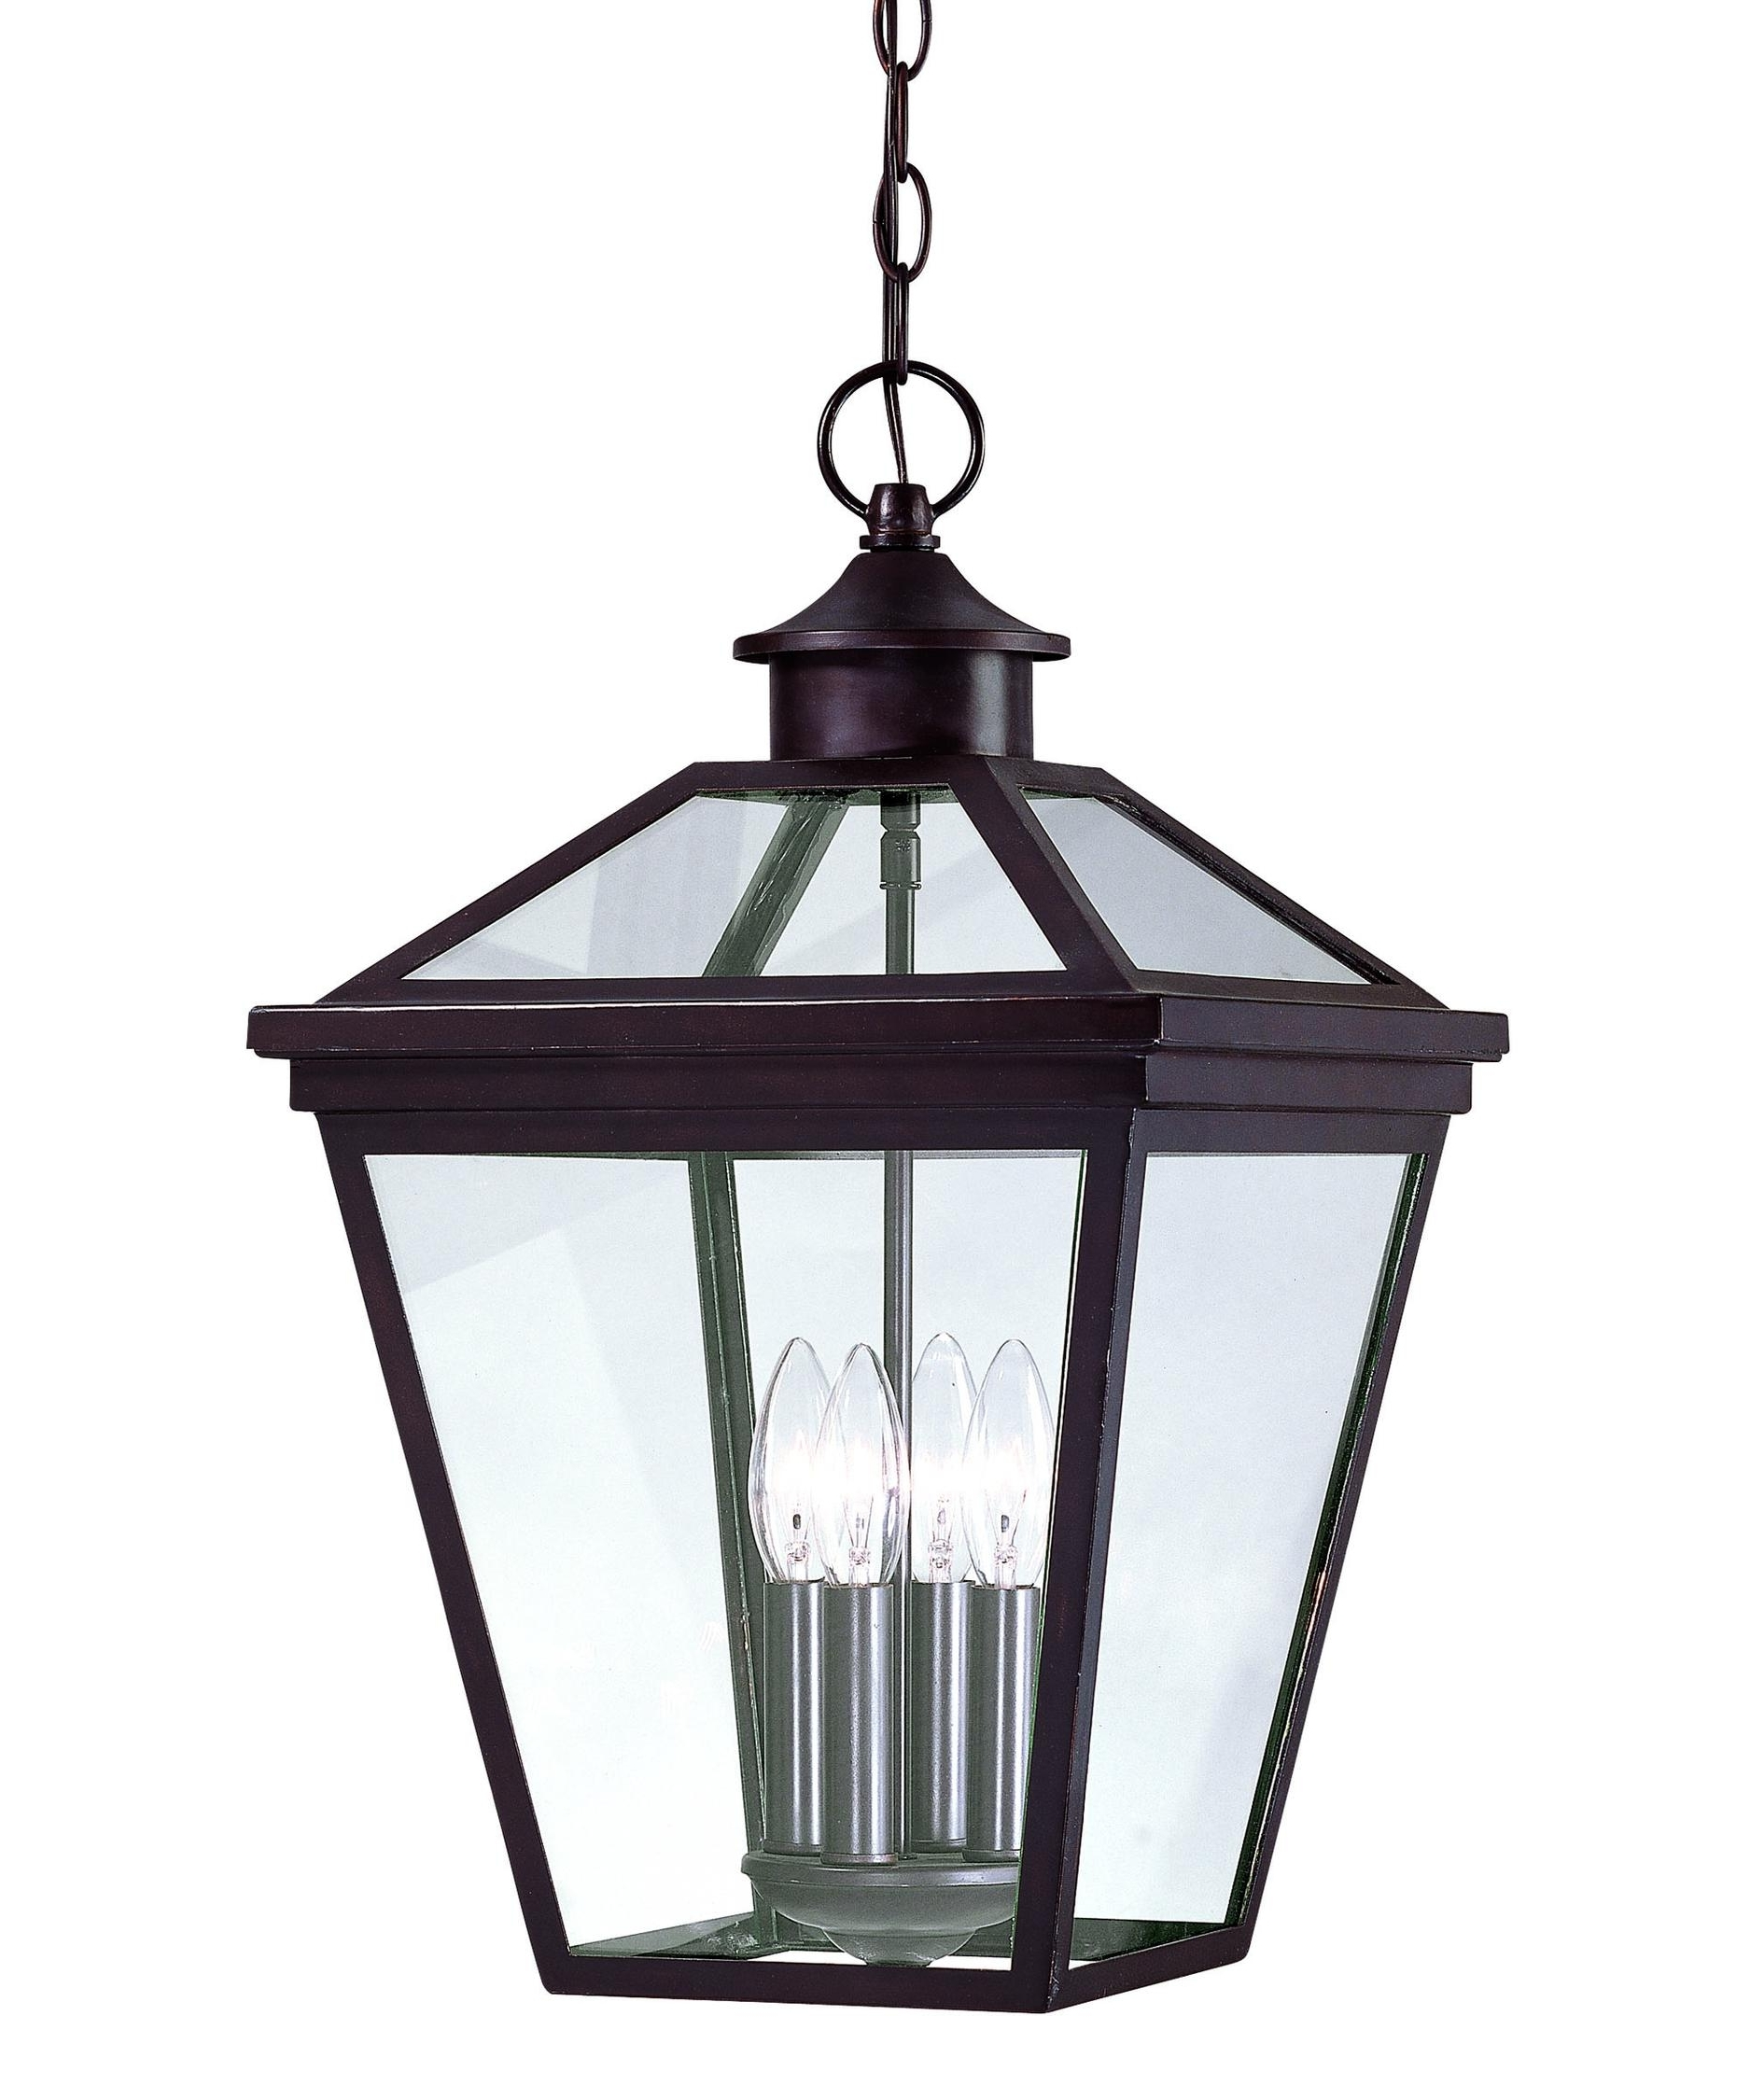 Savoy House 5 145 13 Ellijay 12 Inch Wide 4 Light Outdoor Hanging With Regard To Most Up To Date Outdoor Glass Lanterns (View 8 of 20)